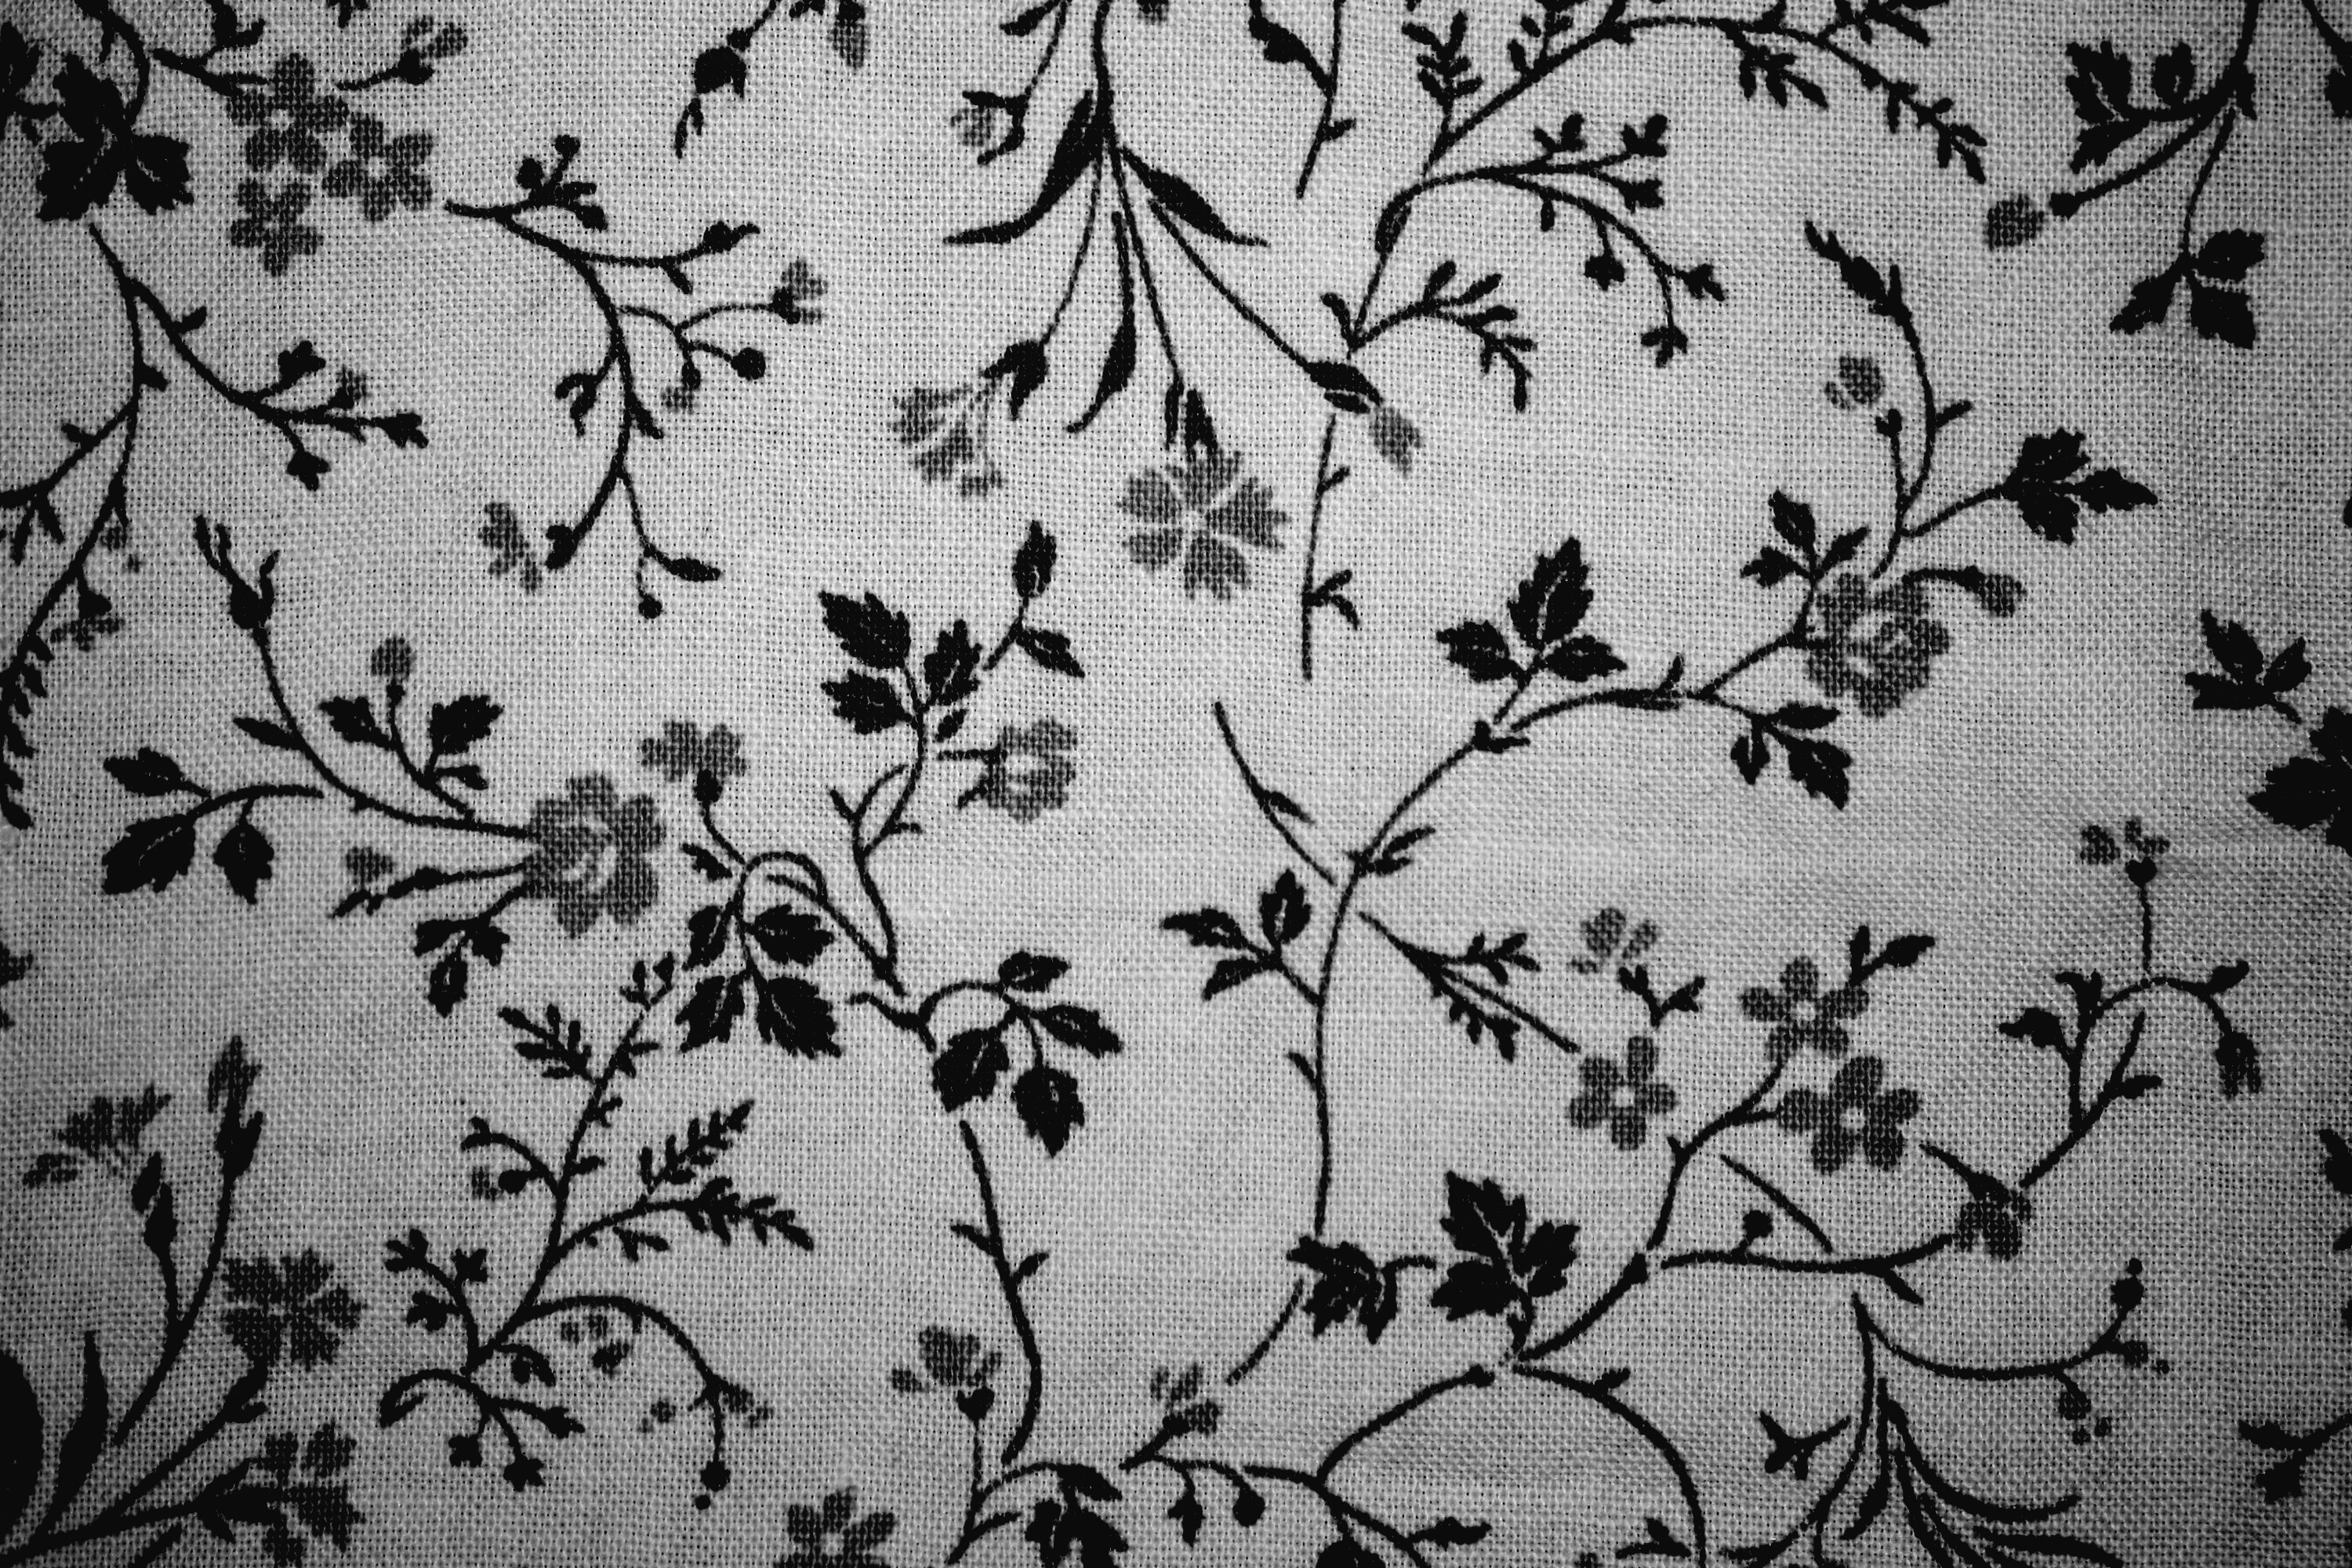 Black on white floral print fabric texture